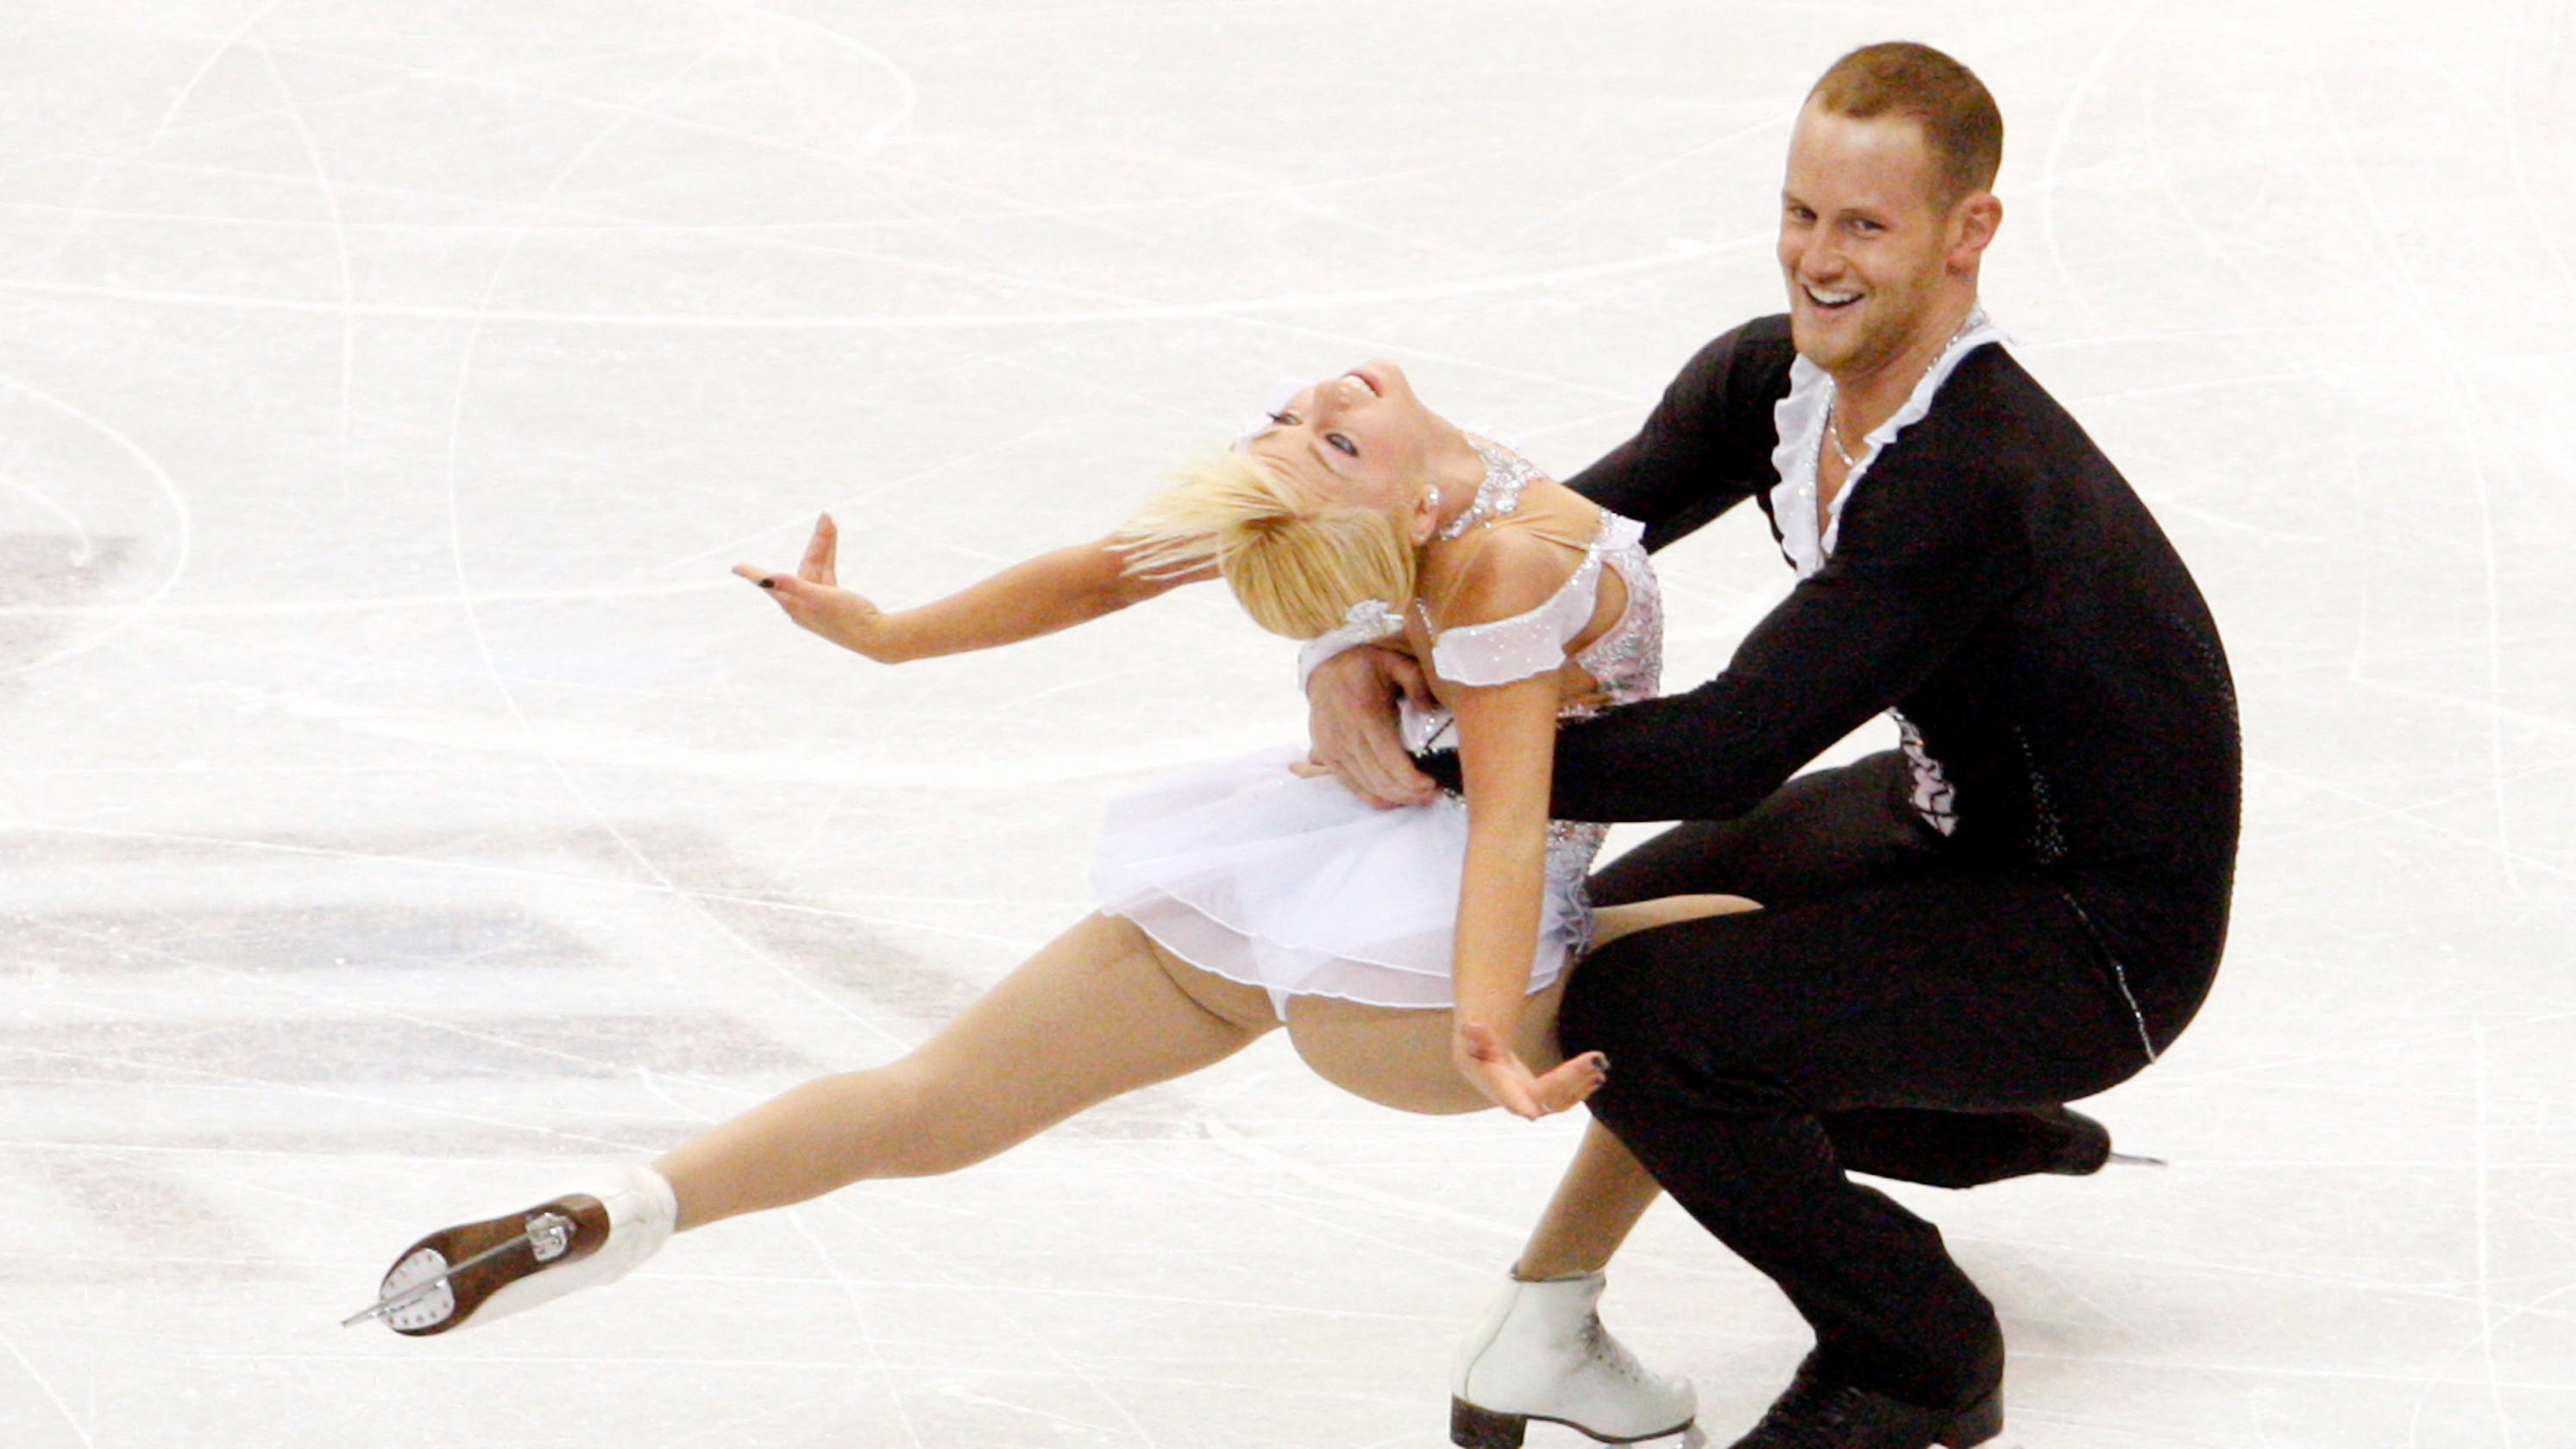 Former figure skater says she was abused by partner who killed himself - USA TODAY